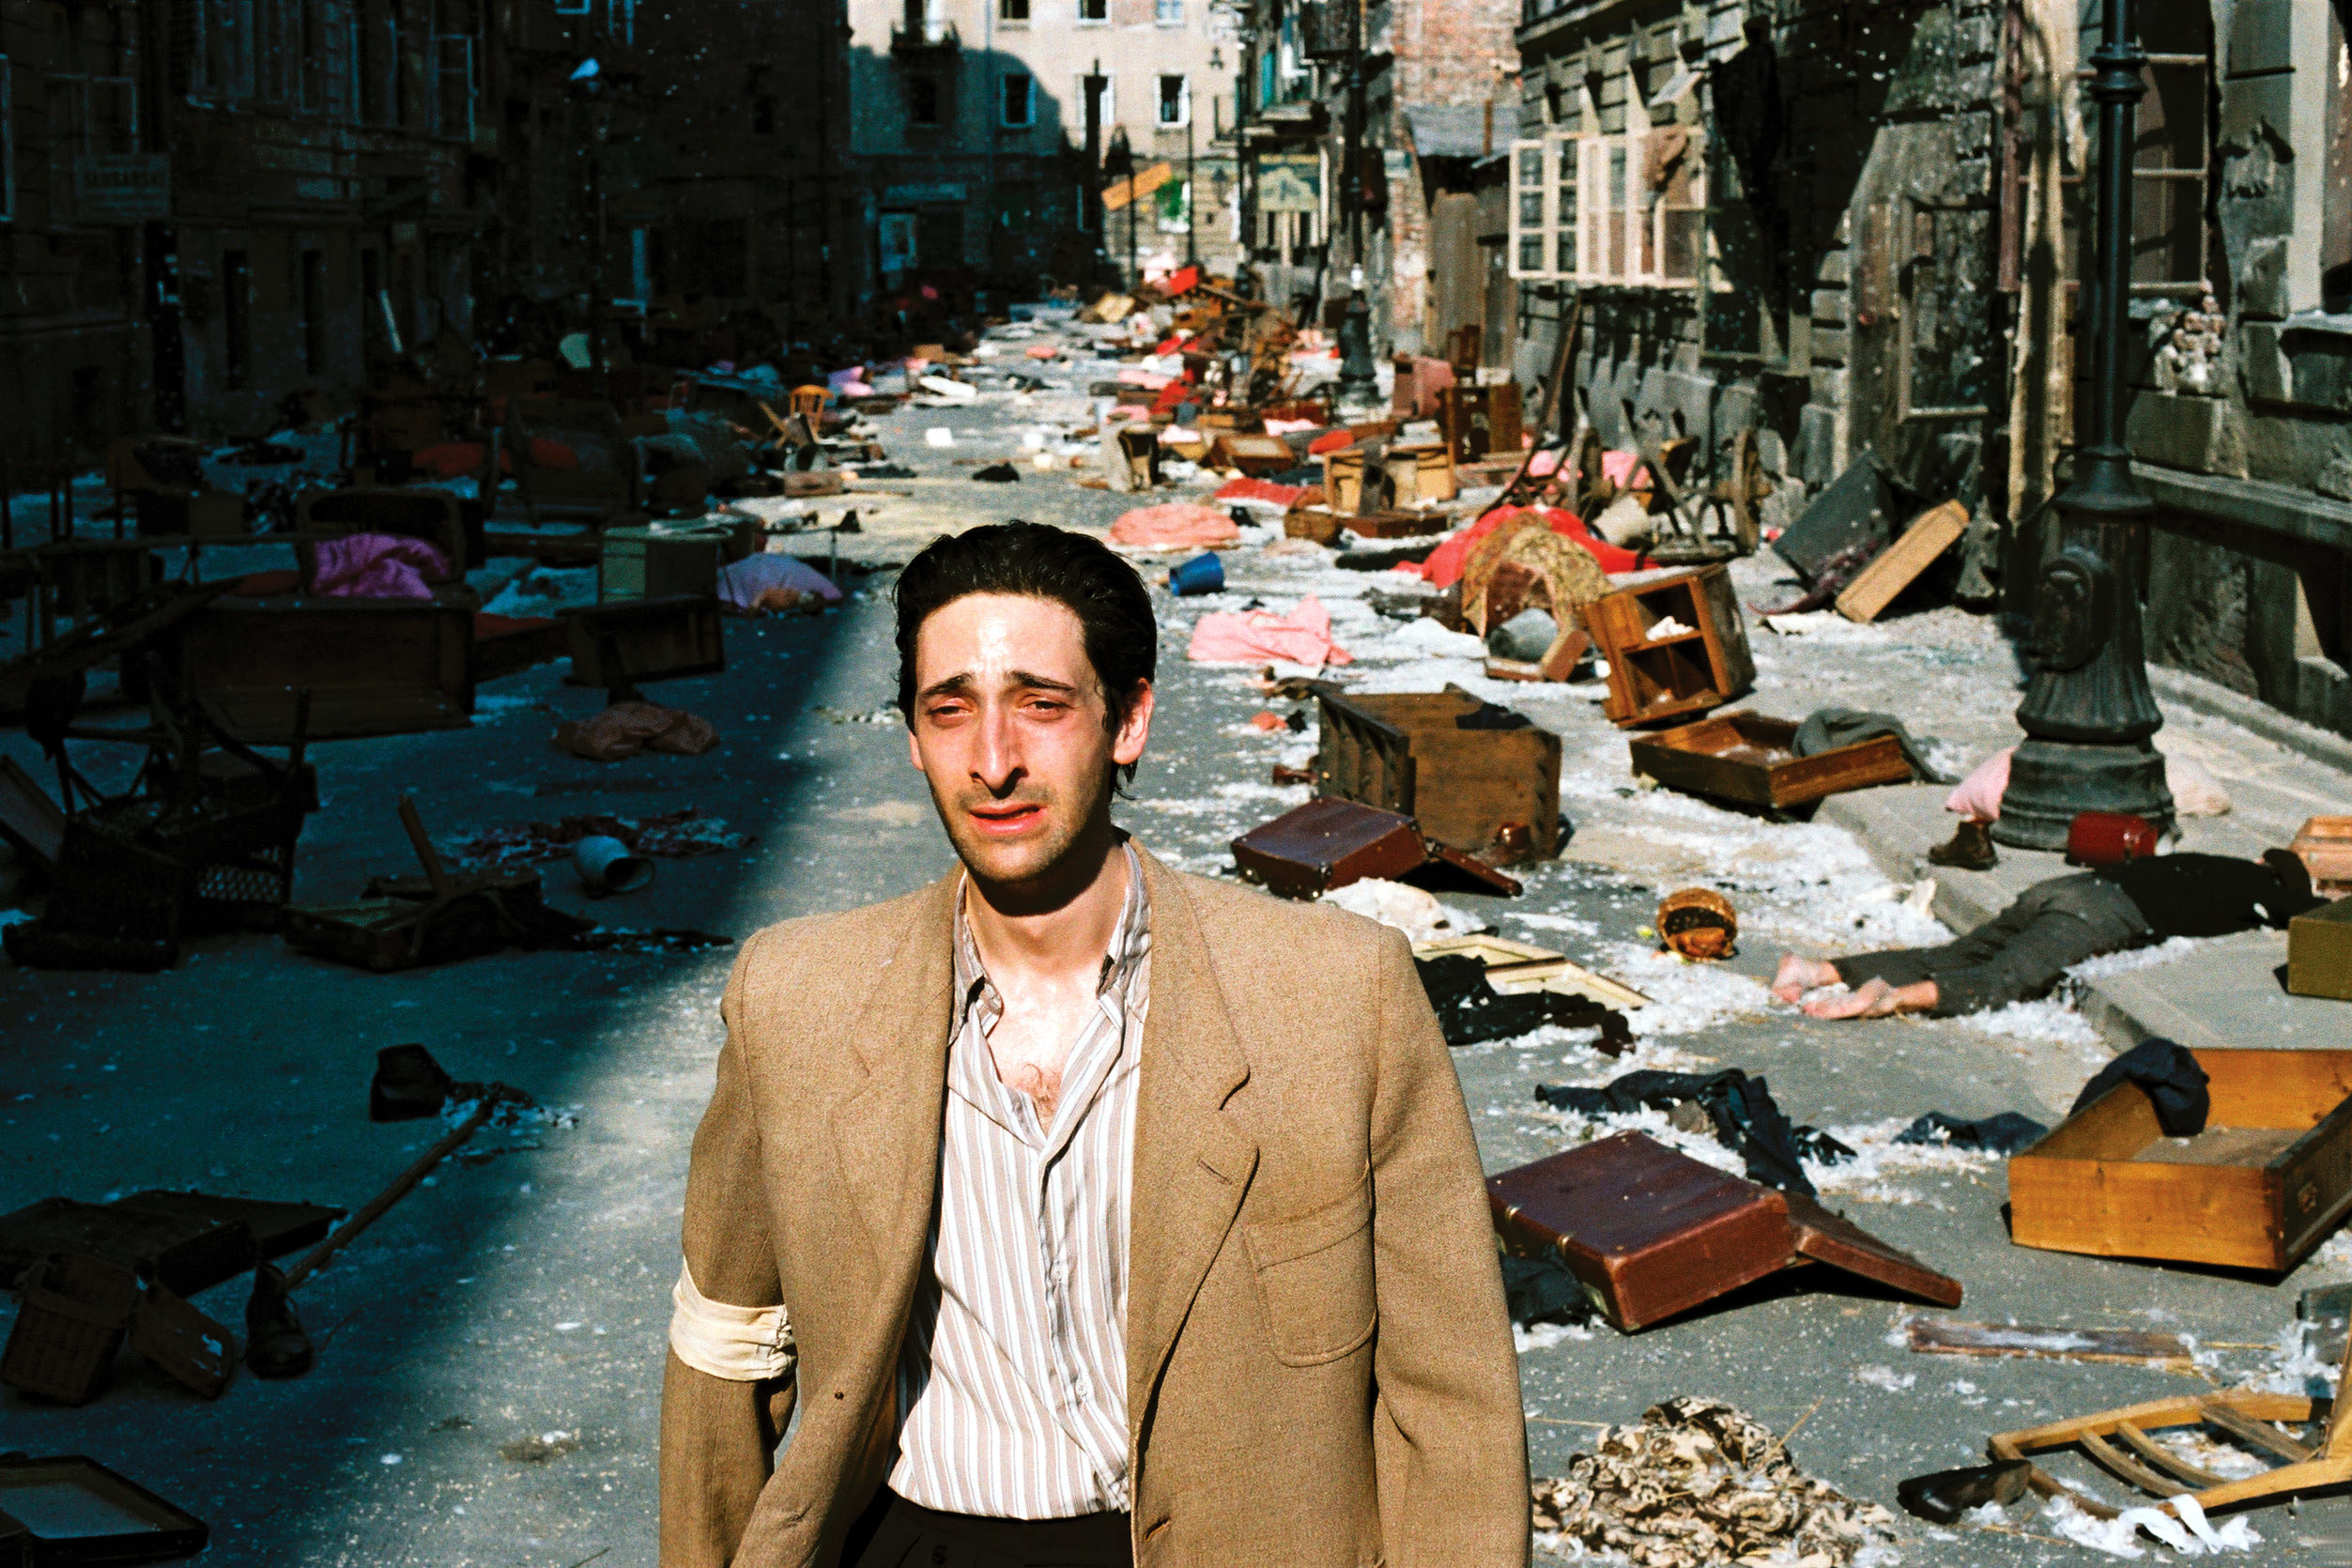 Szpilman crying as he walks away from the chaos and disarray of his neighborhood